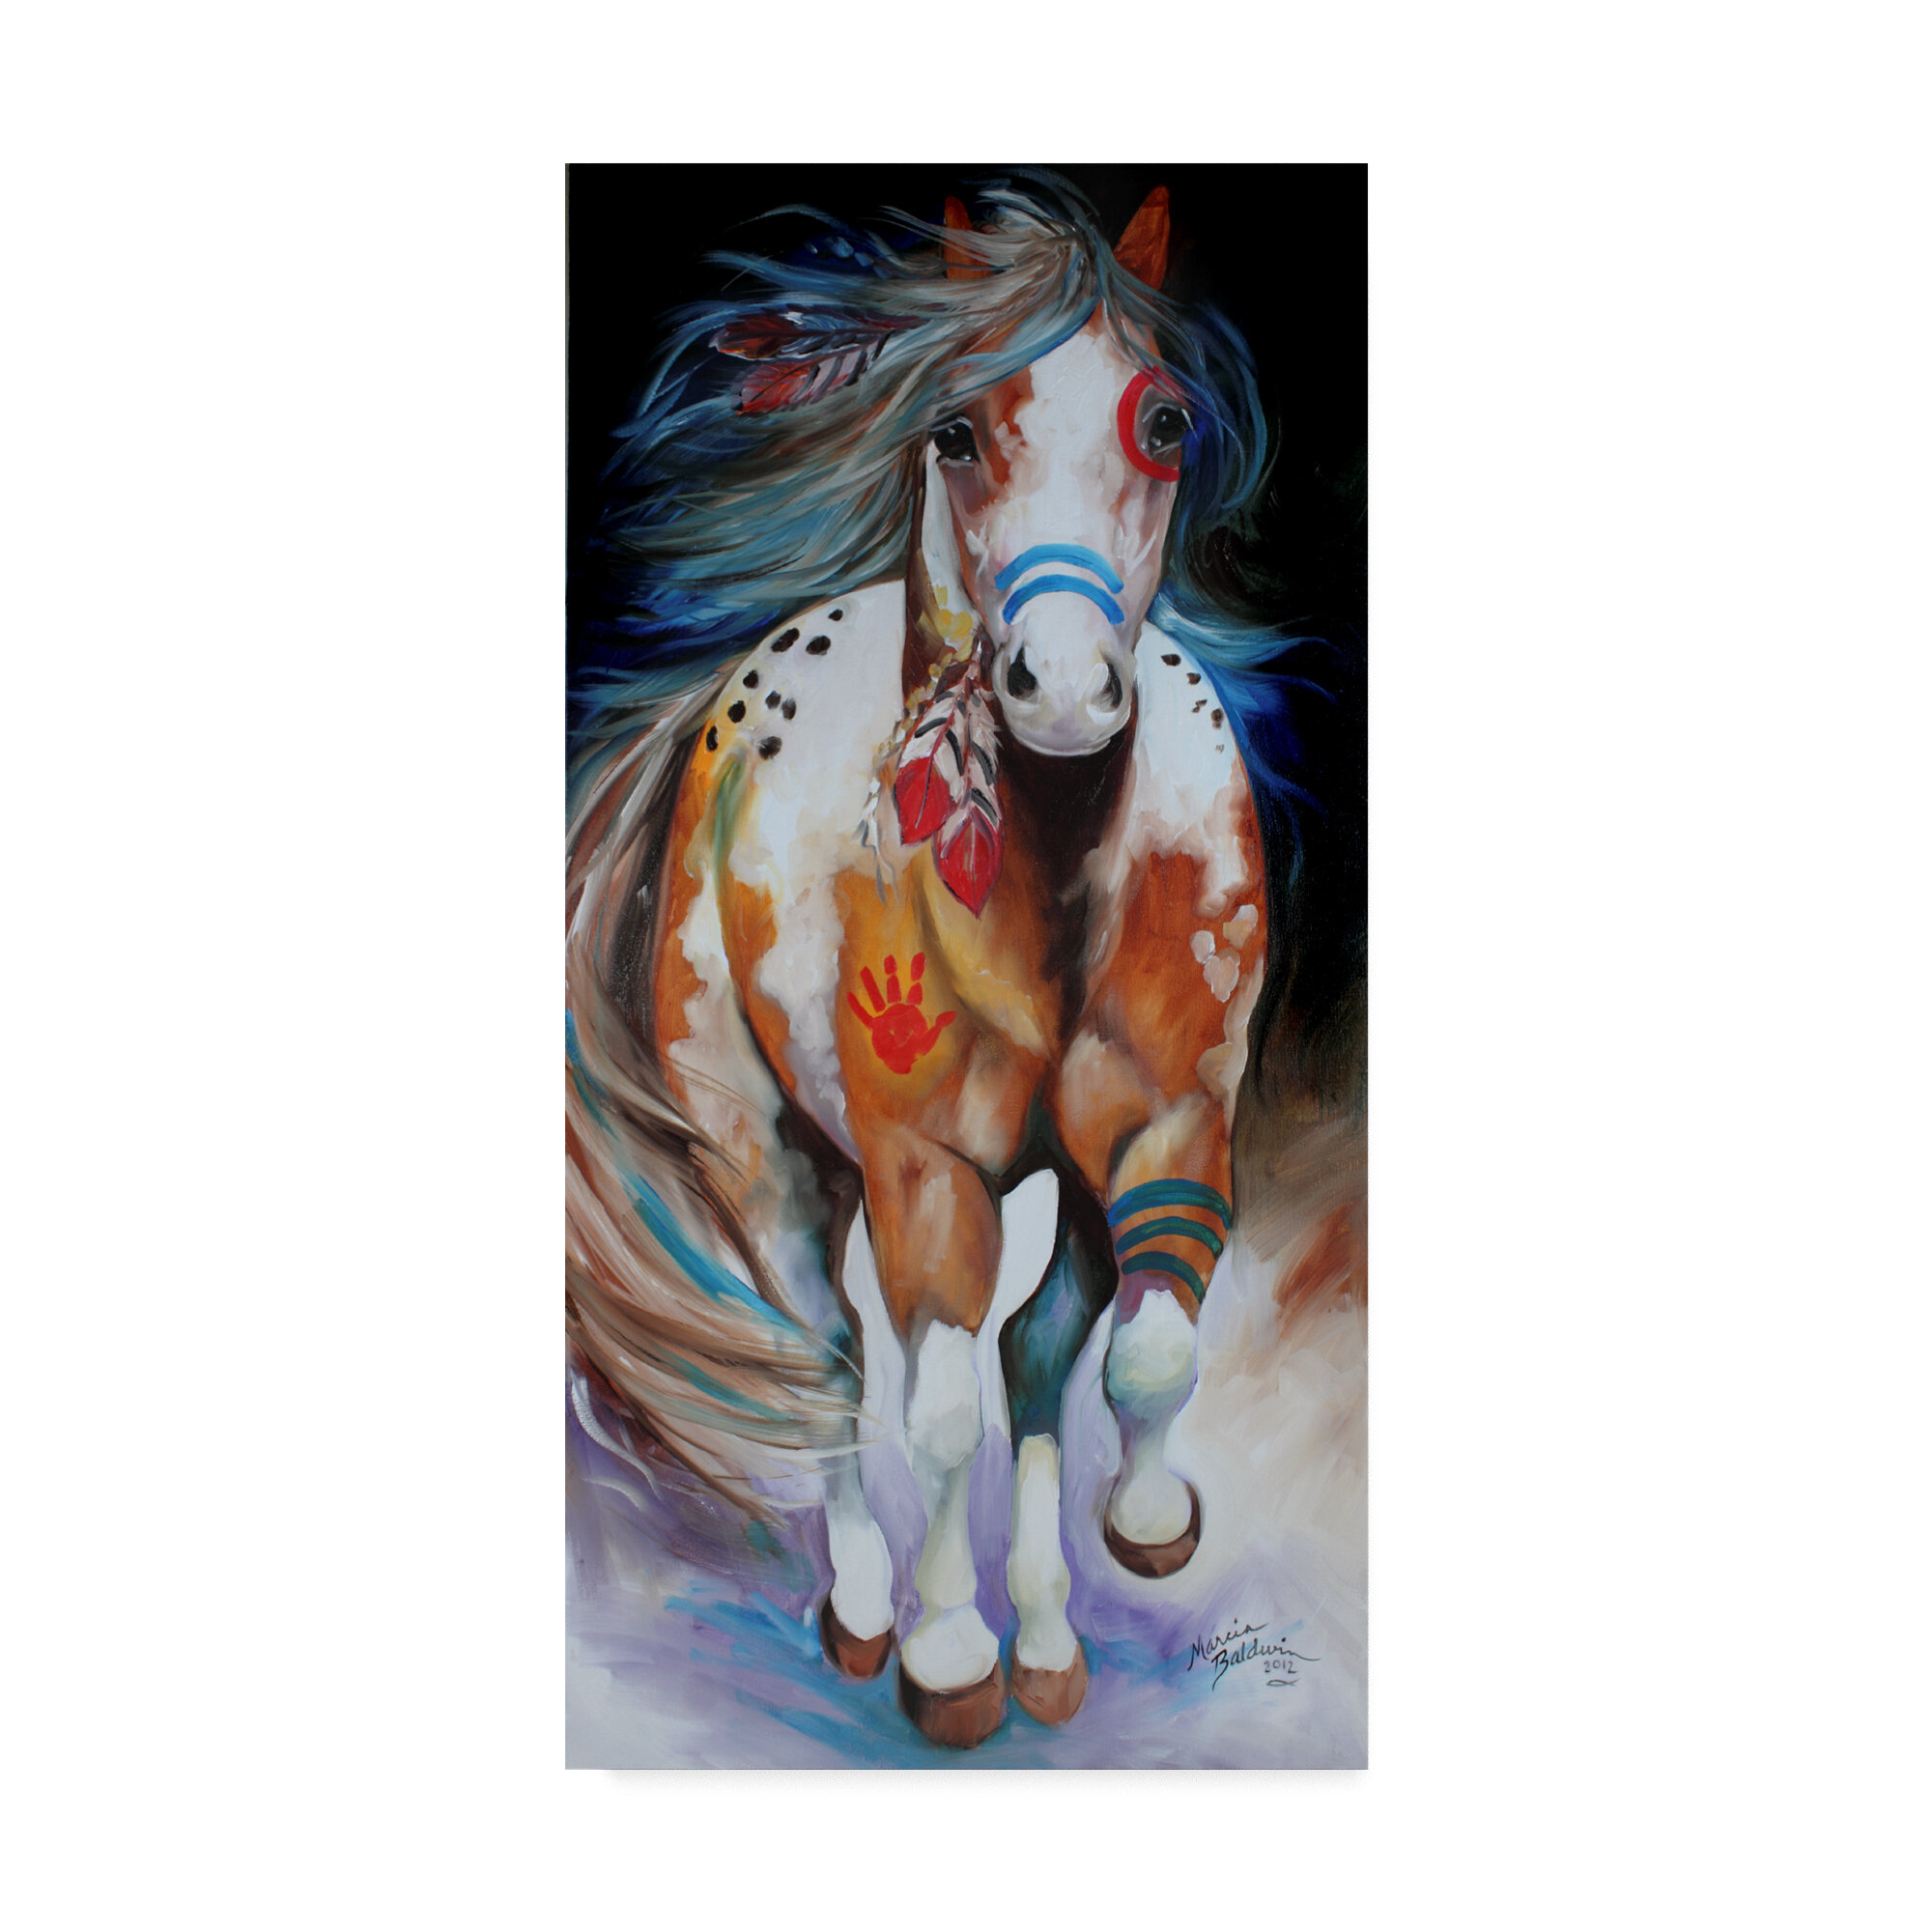 Trademark Art Brave The Indian War Horse Acrylic Painting Print On Wrapped Canvas Reviews